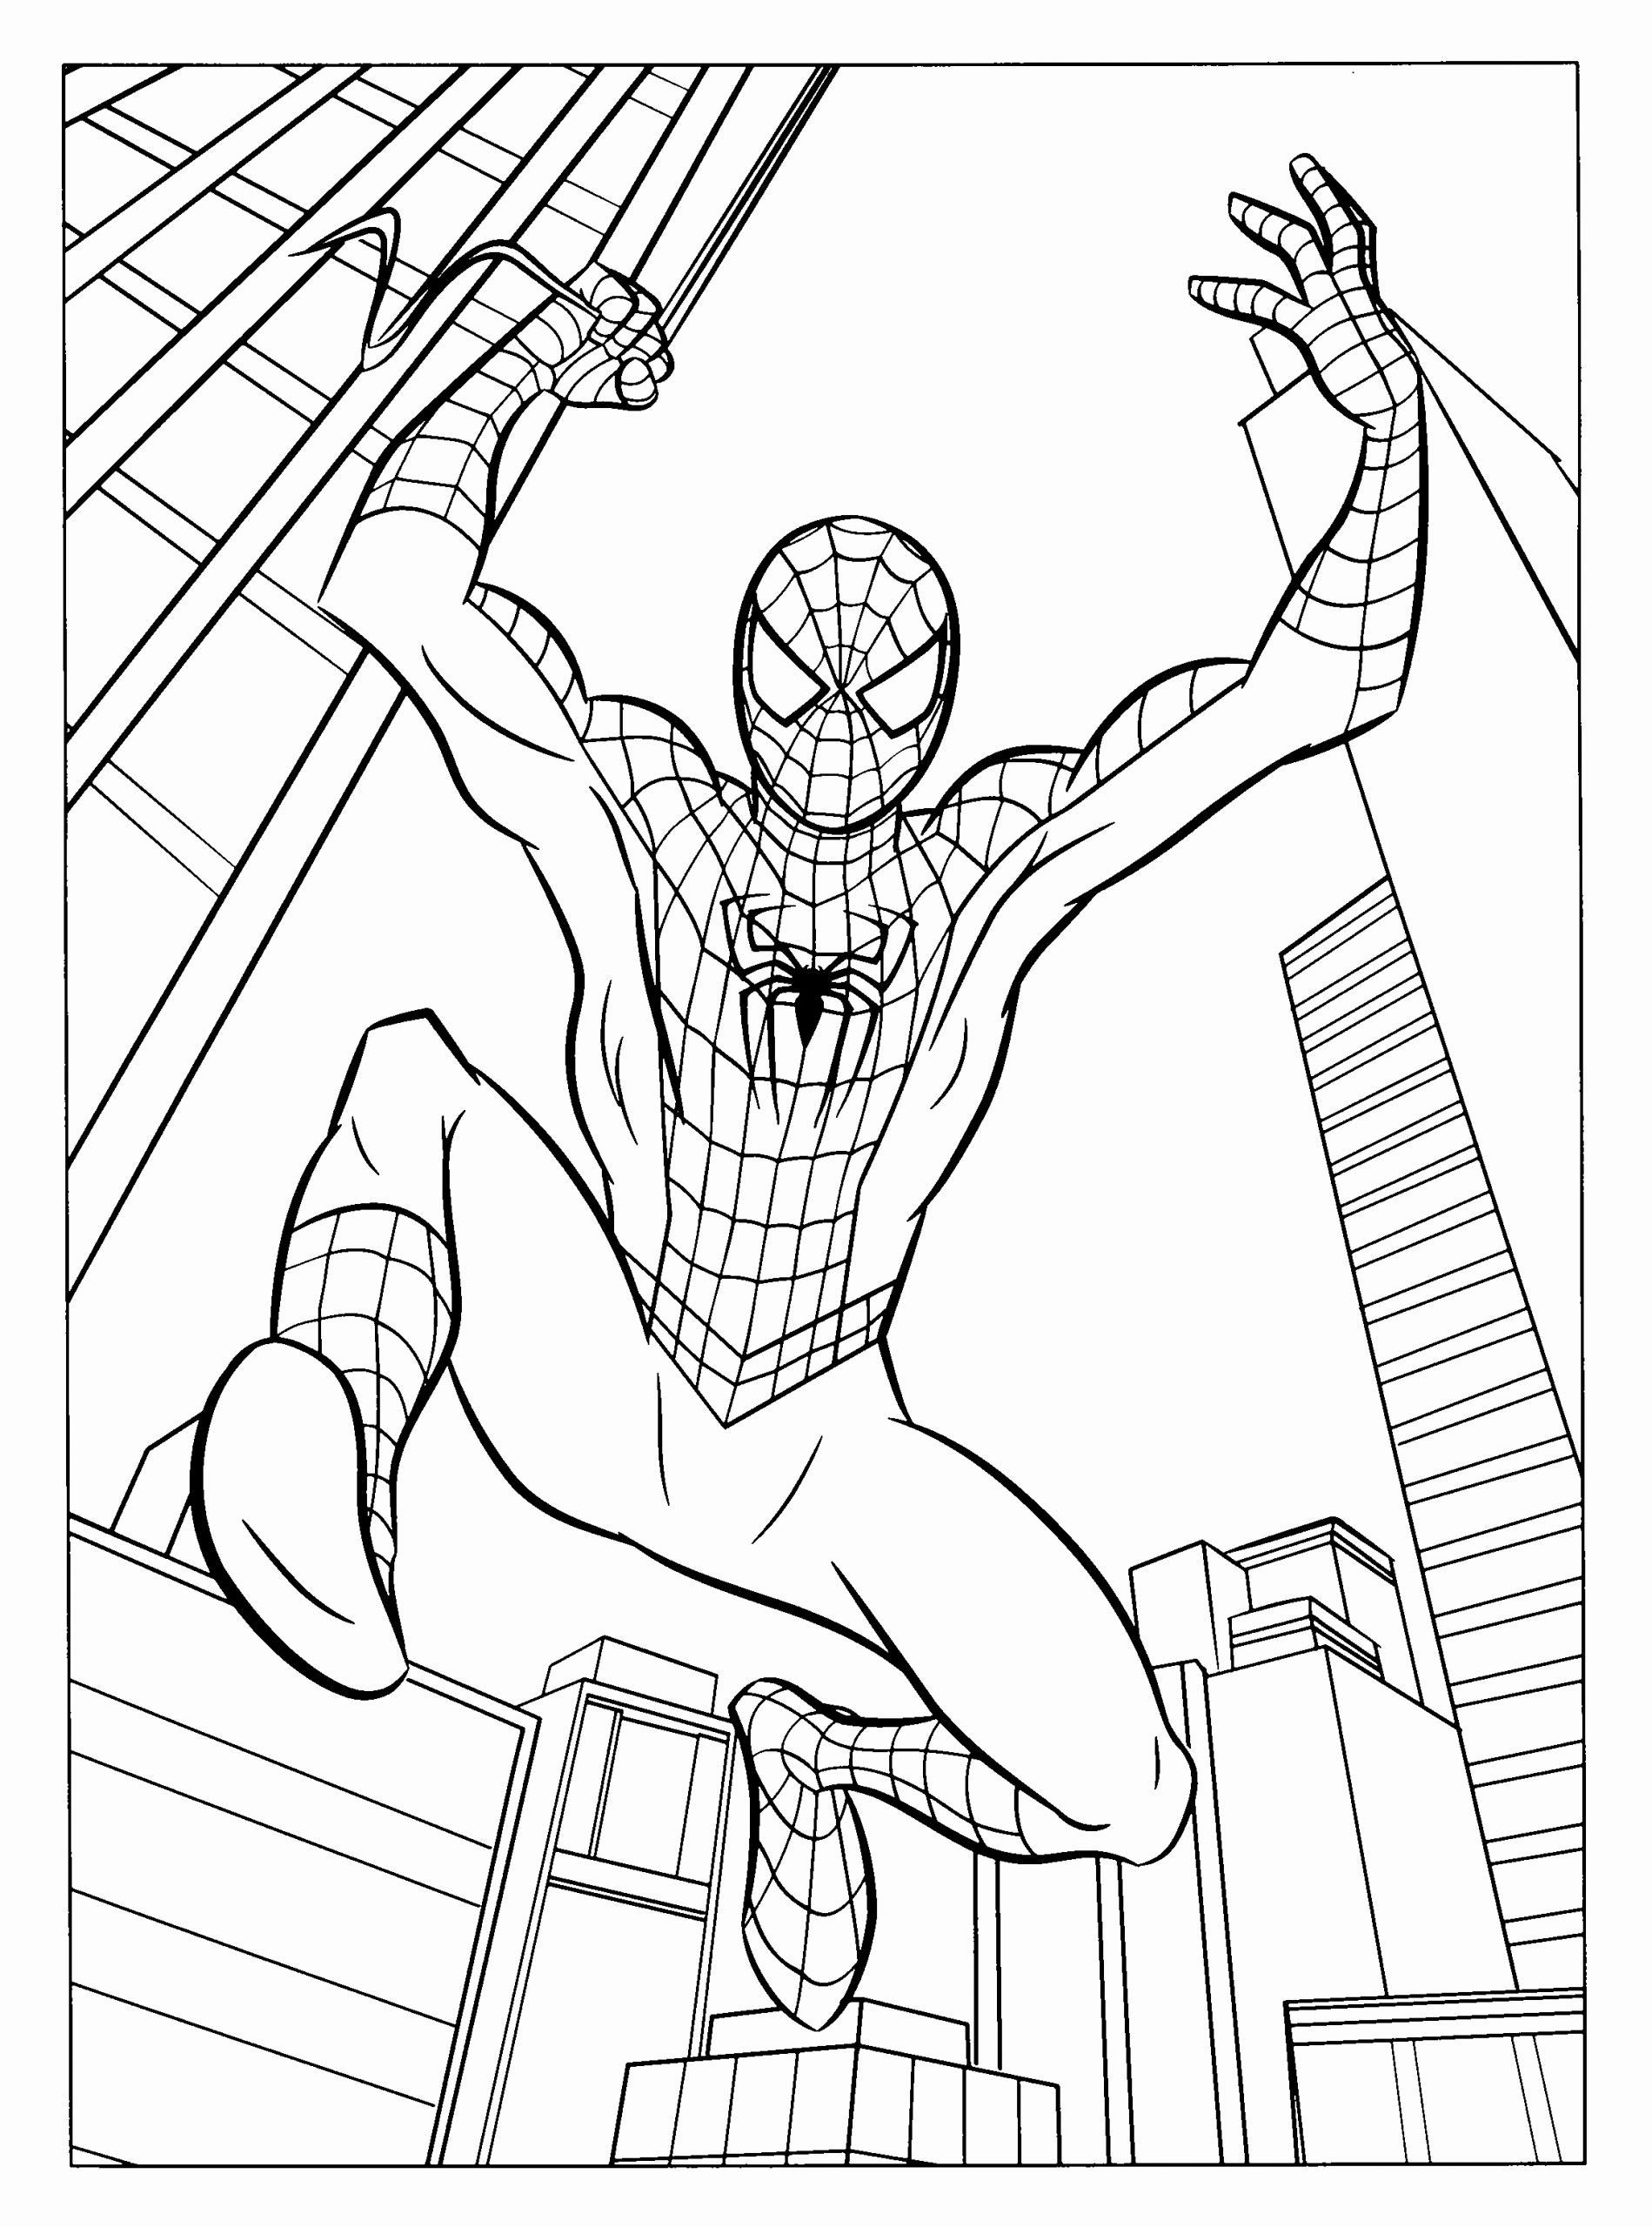 Children Coloring Books Inspirational Free Printable Spiderman Coloring Pages For Kids In 2020 Superhero Coloring Pages Batman Coloring Pages Avengers Coloring Pages